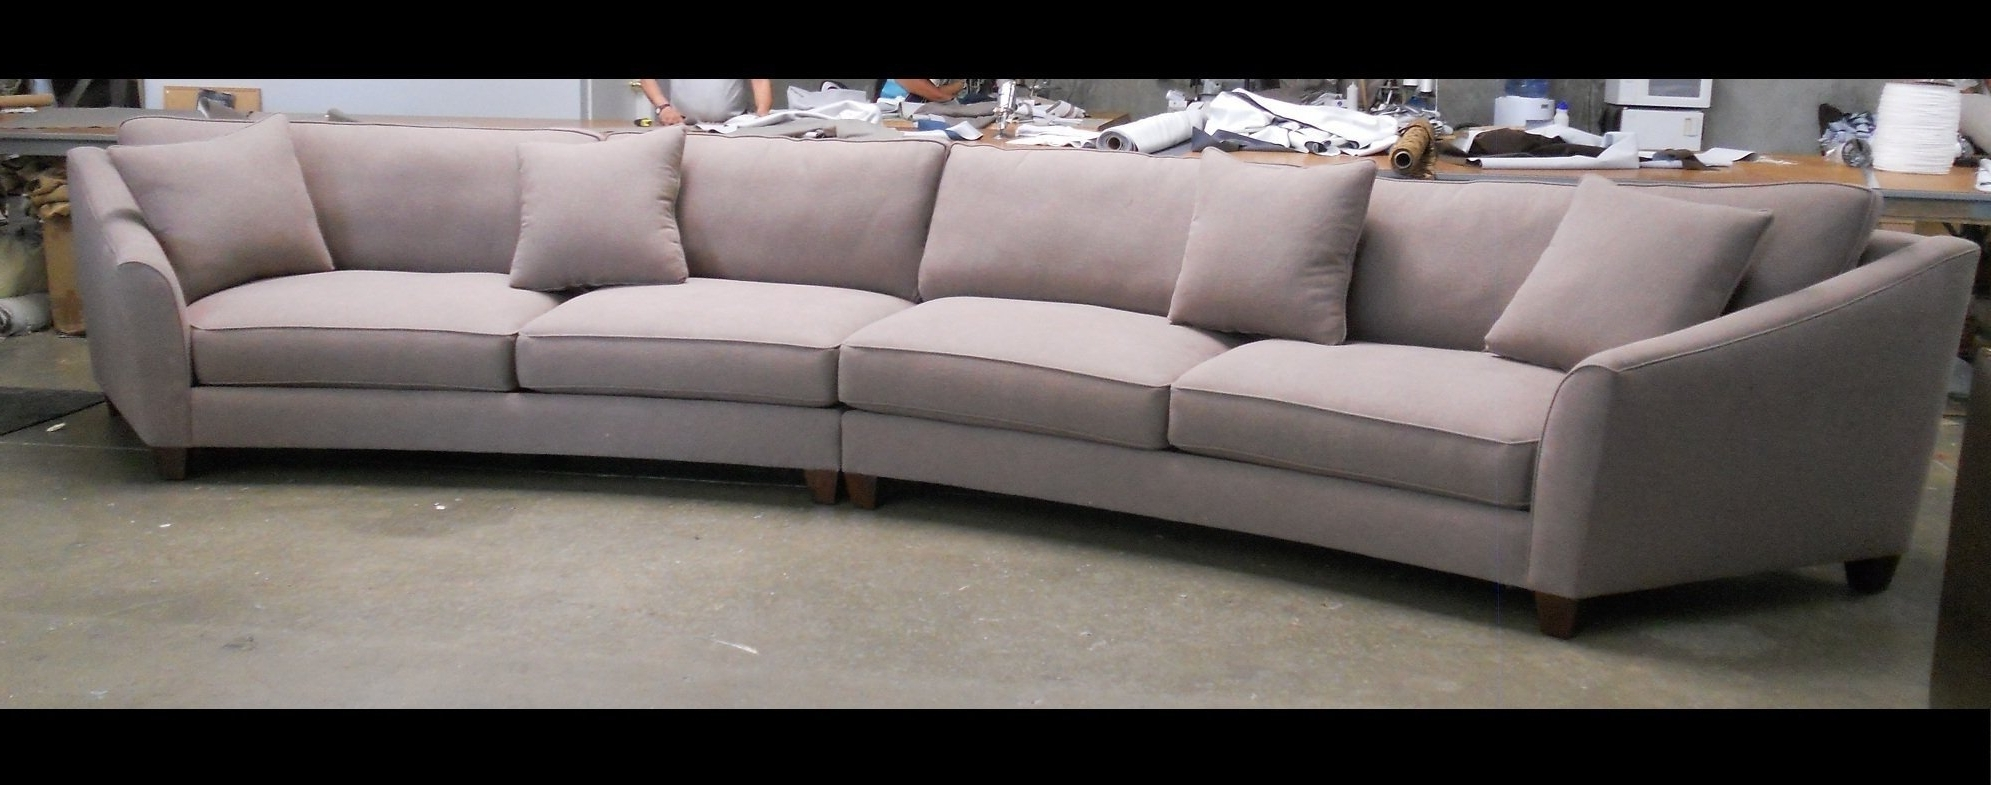 Preferred Furniture : 5060 Recliner Sectional Sofa Costco $699 Corner Couch Inside Joining Hardware Sectional Sofas (View 11 of 20)